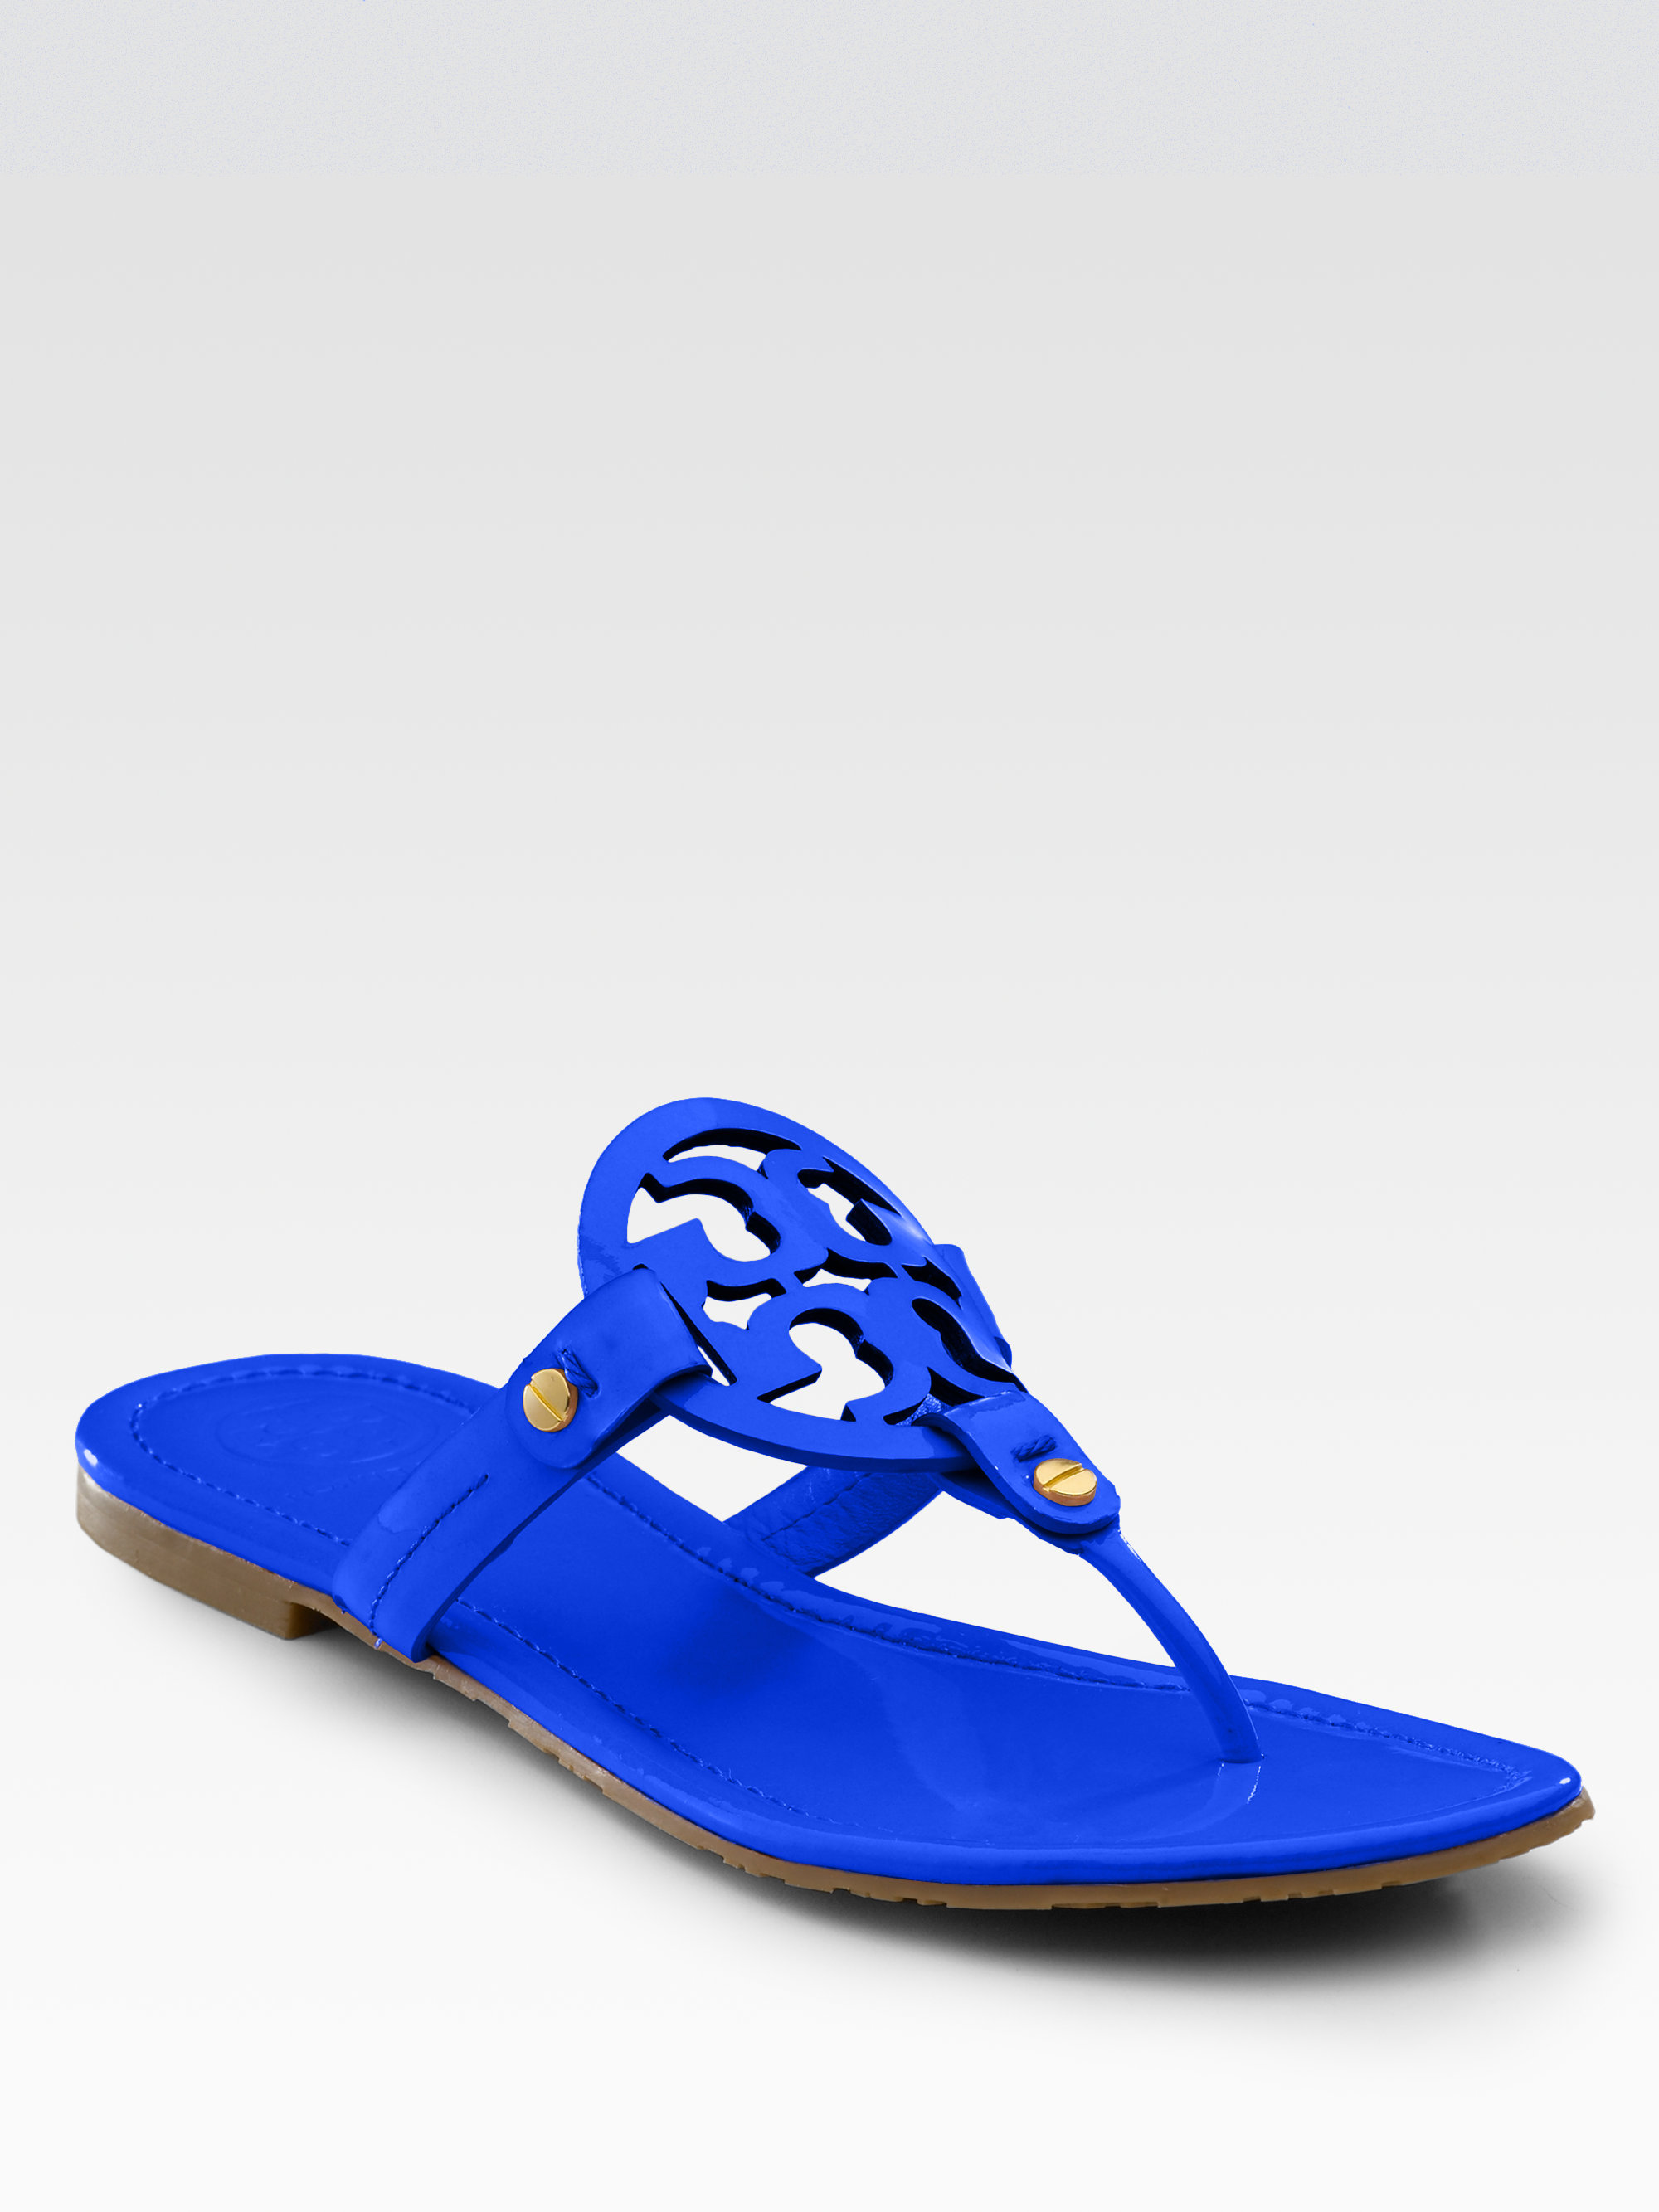 754d0847bad57 ... get lyst tory burch miller patent leather thong sandals in blue fb881  092b3